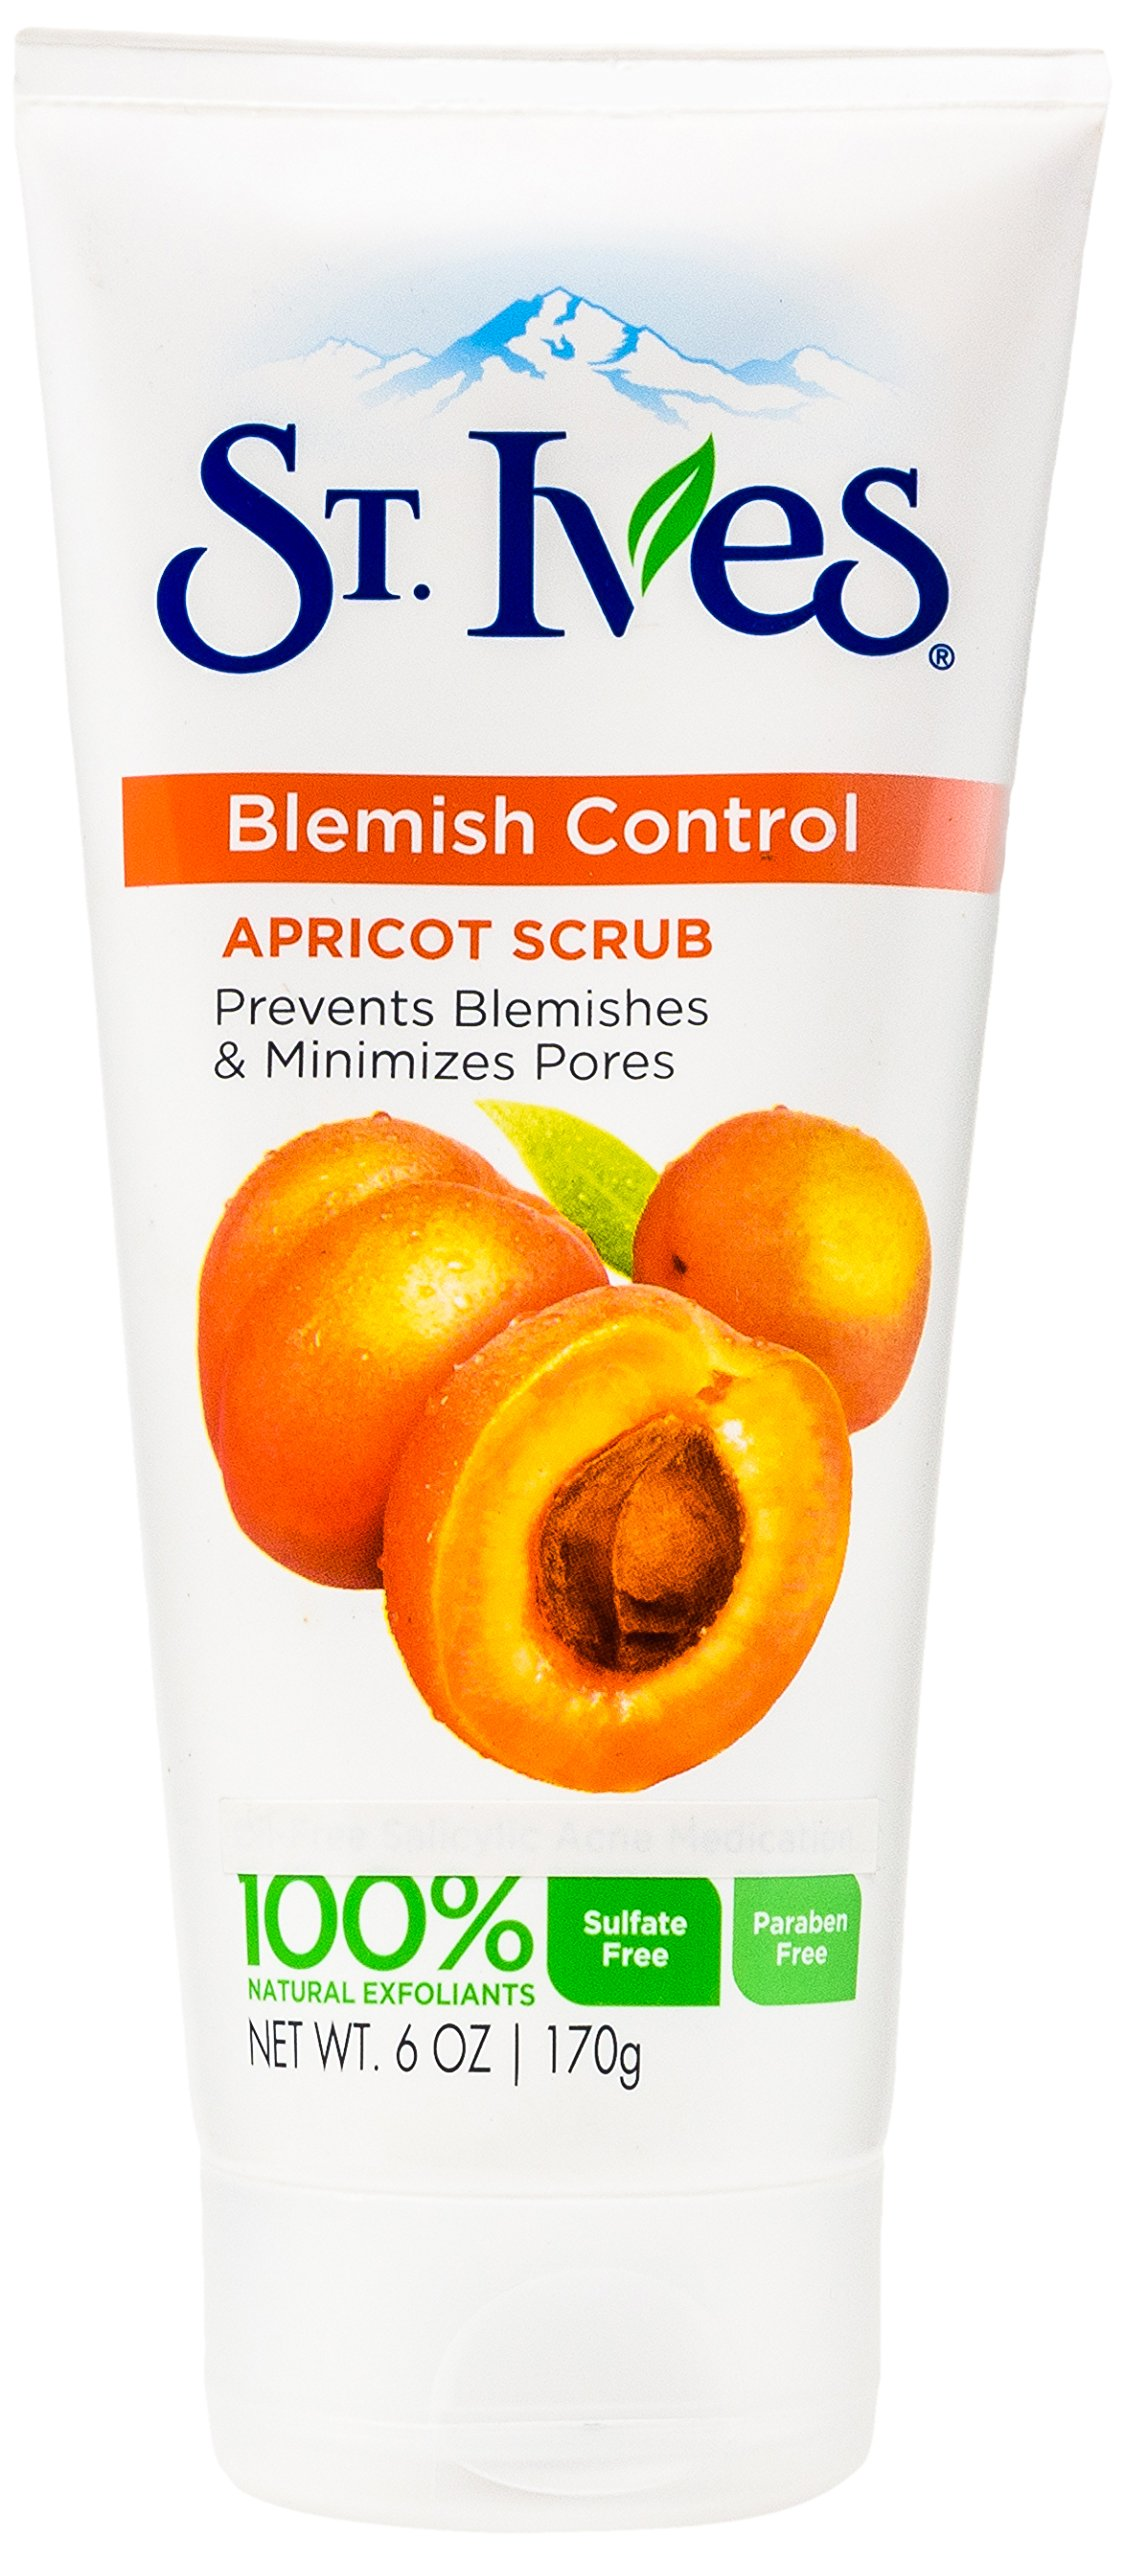 St. Ives Blemish Control Face Scrub, Apricot 6 oz